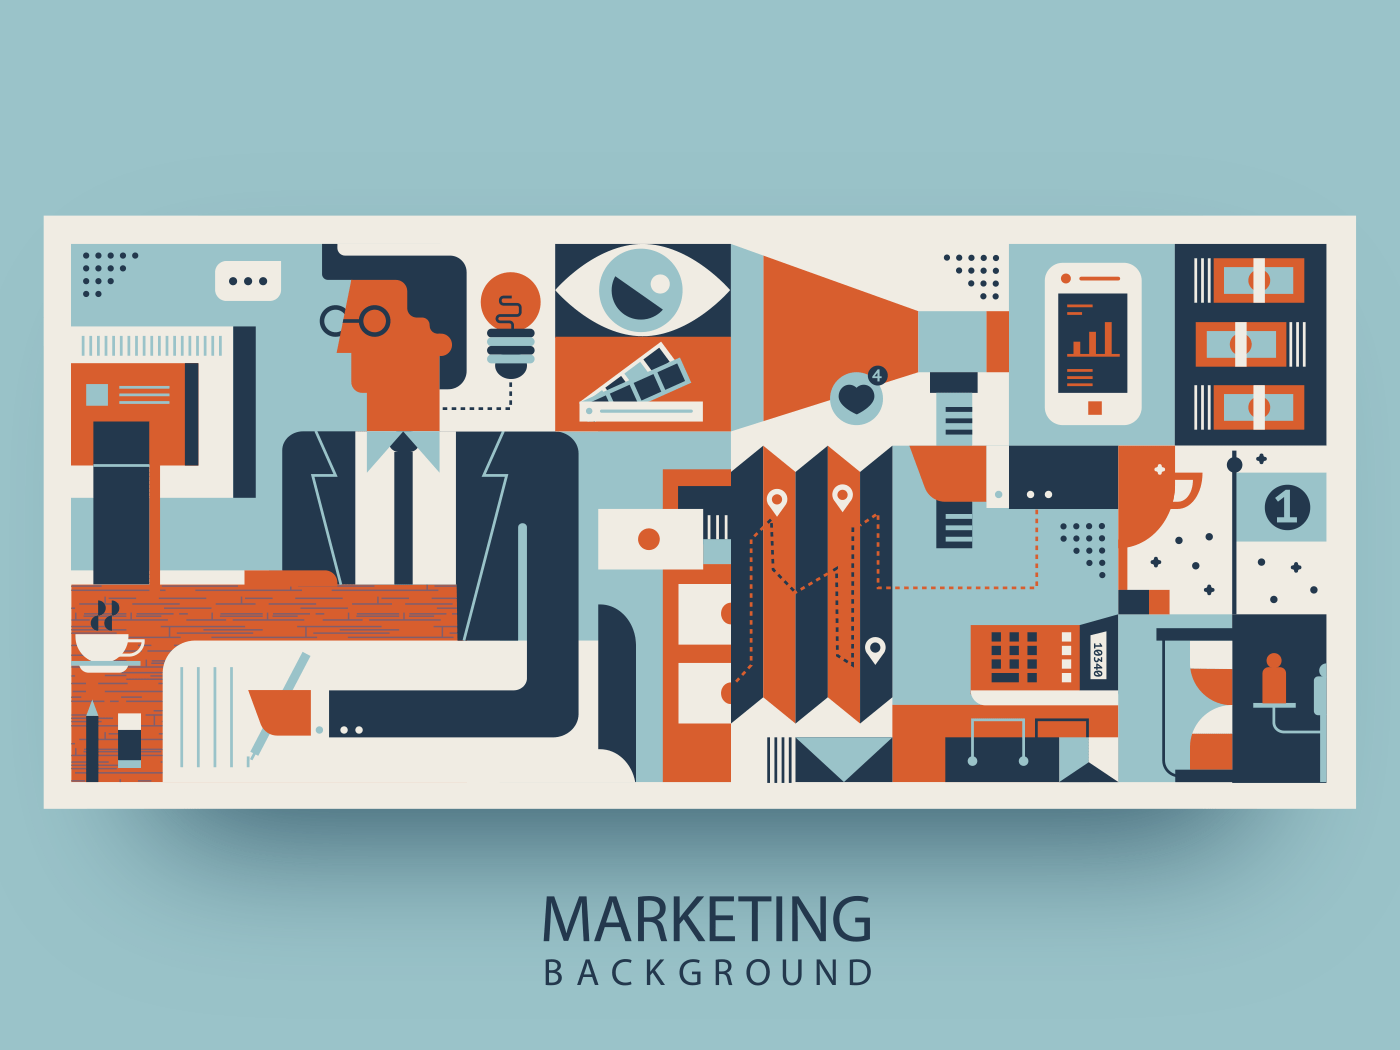 Marketing abstract background illustration